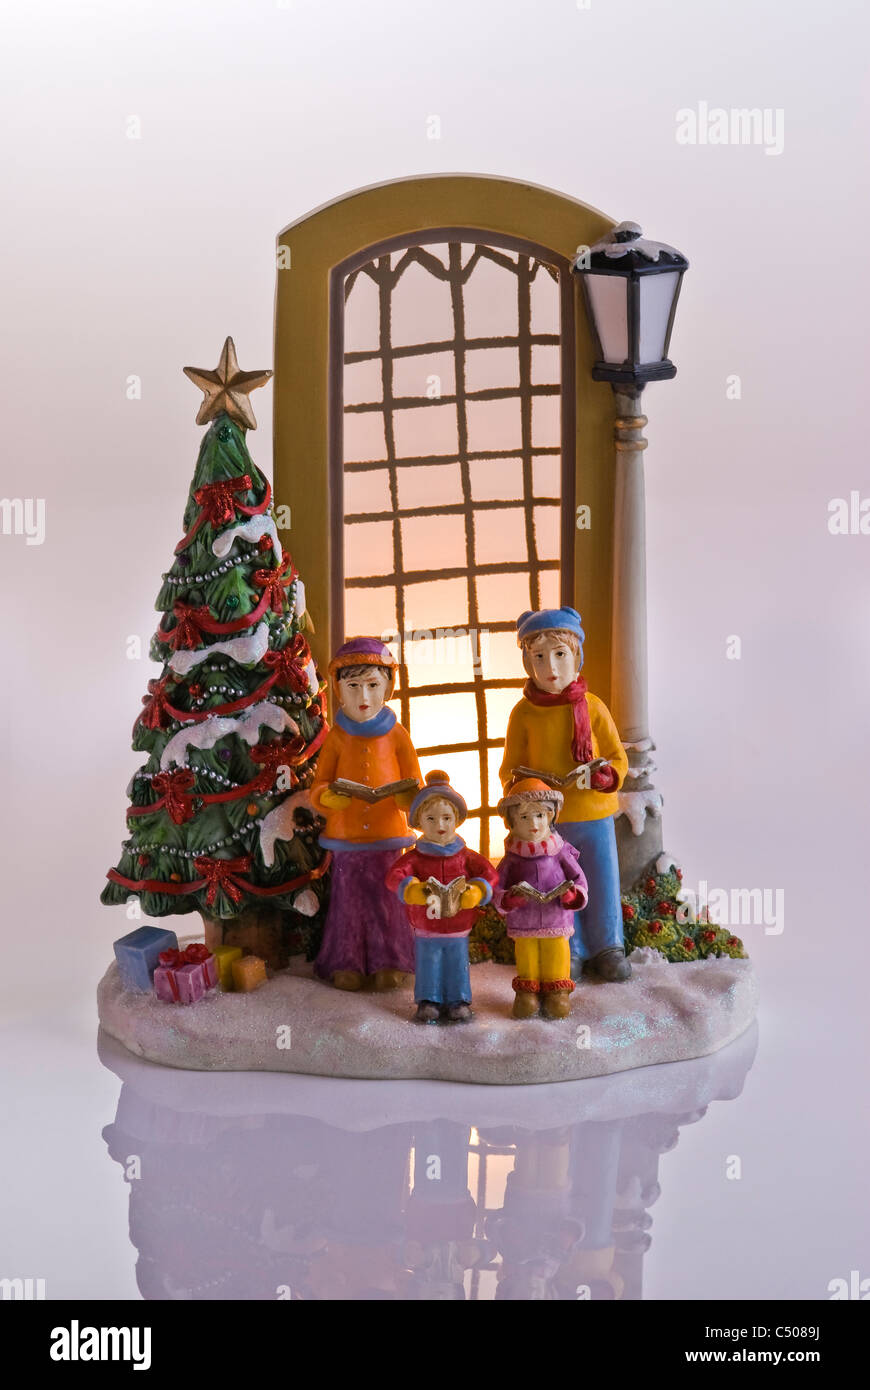 Christmas Carol Singers Decorations.Carol Singers Outside An Illuminated Window Christmas